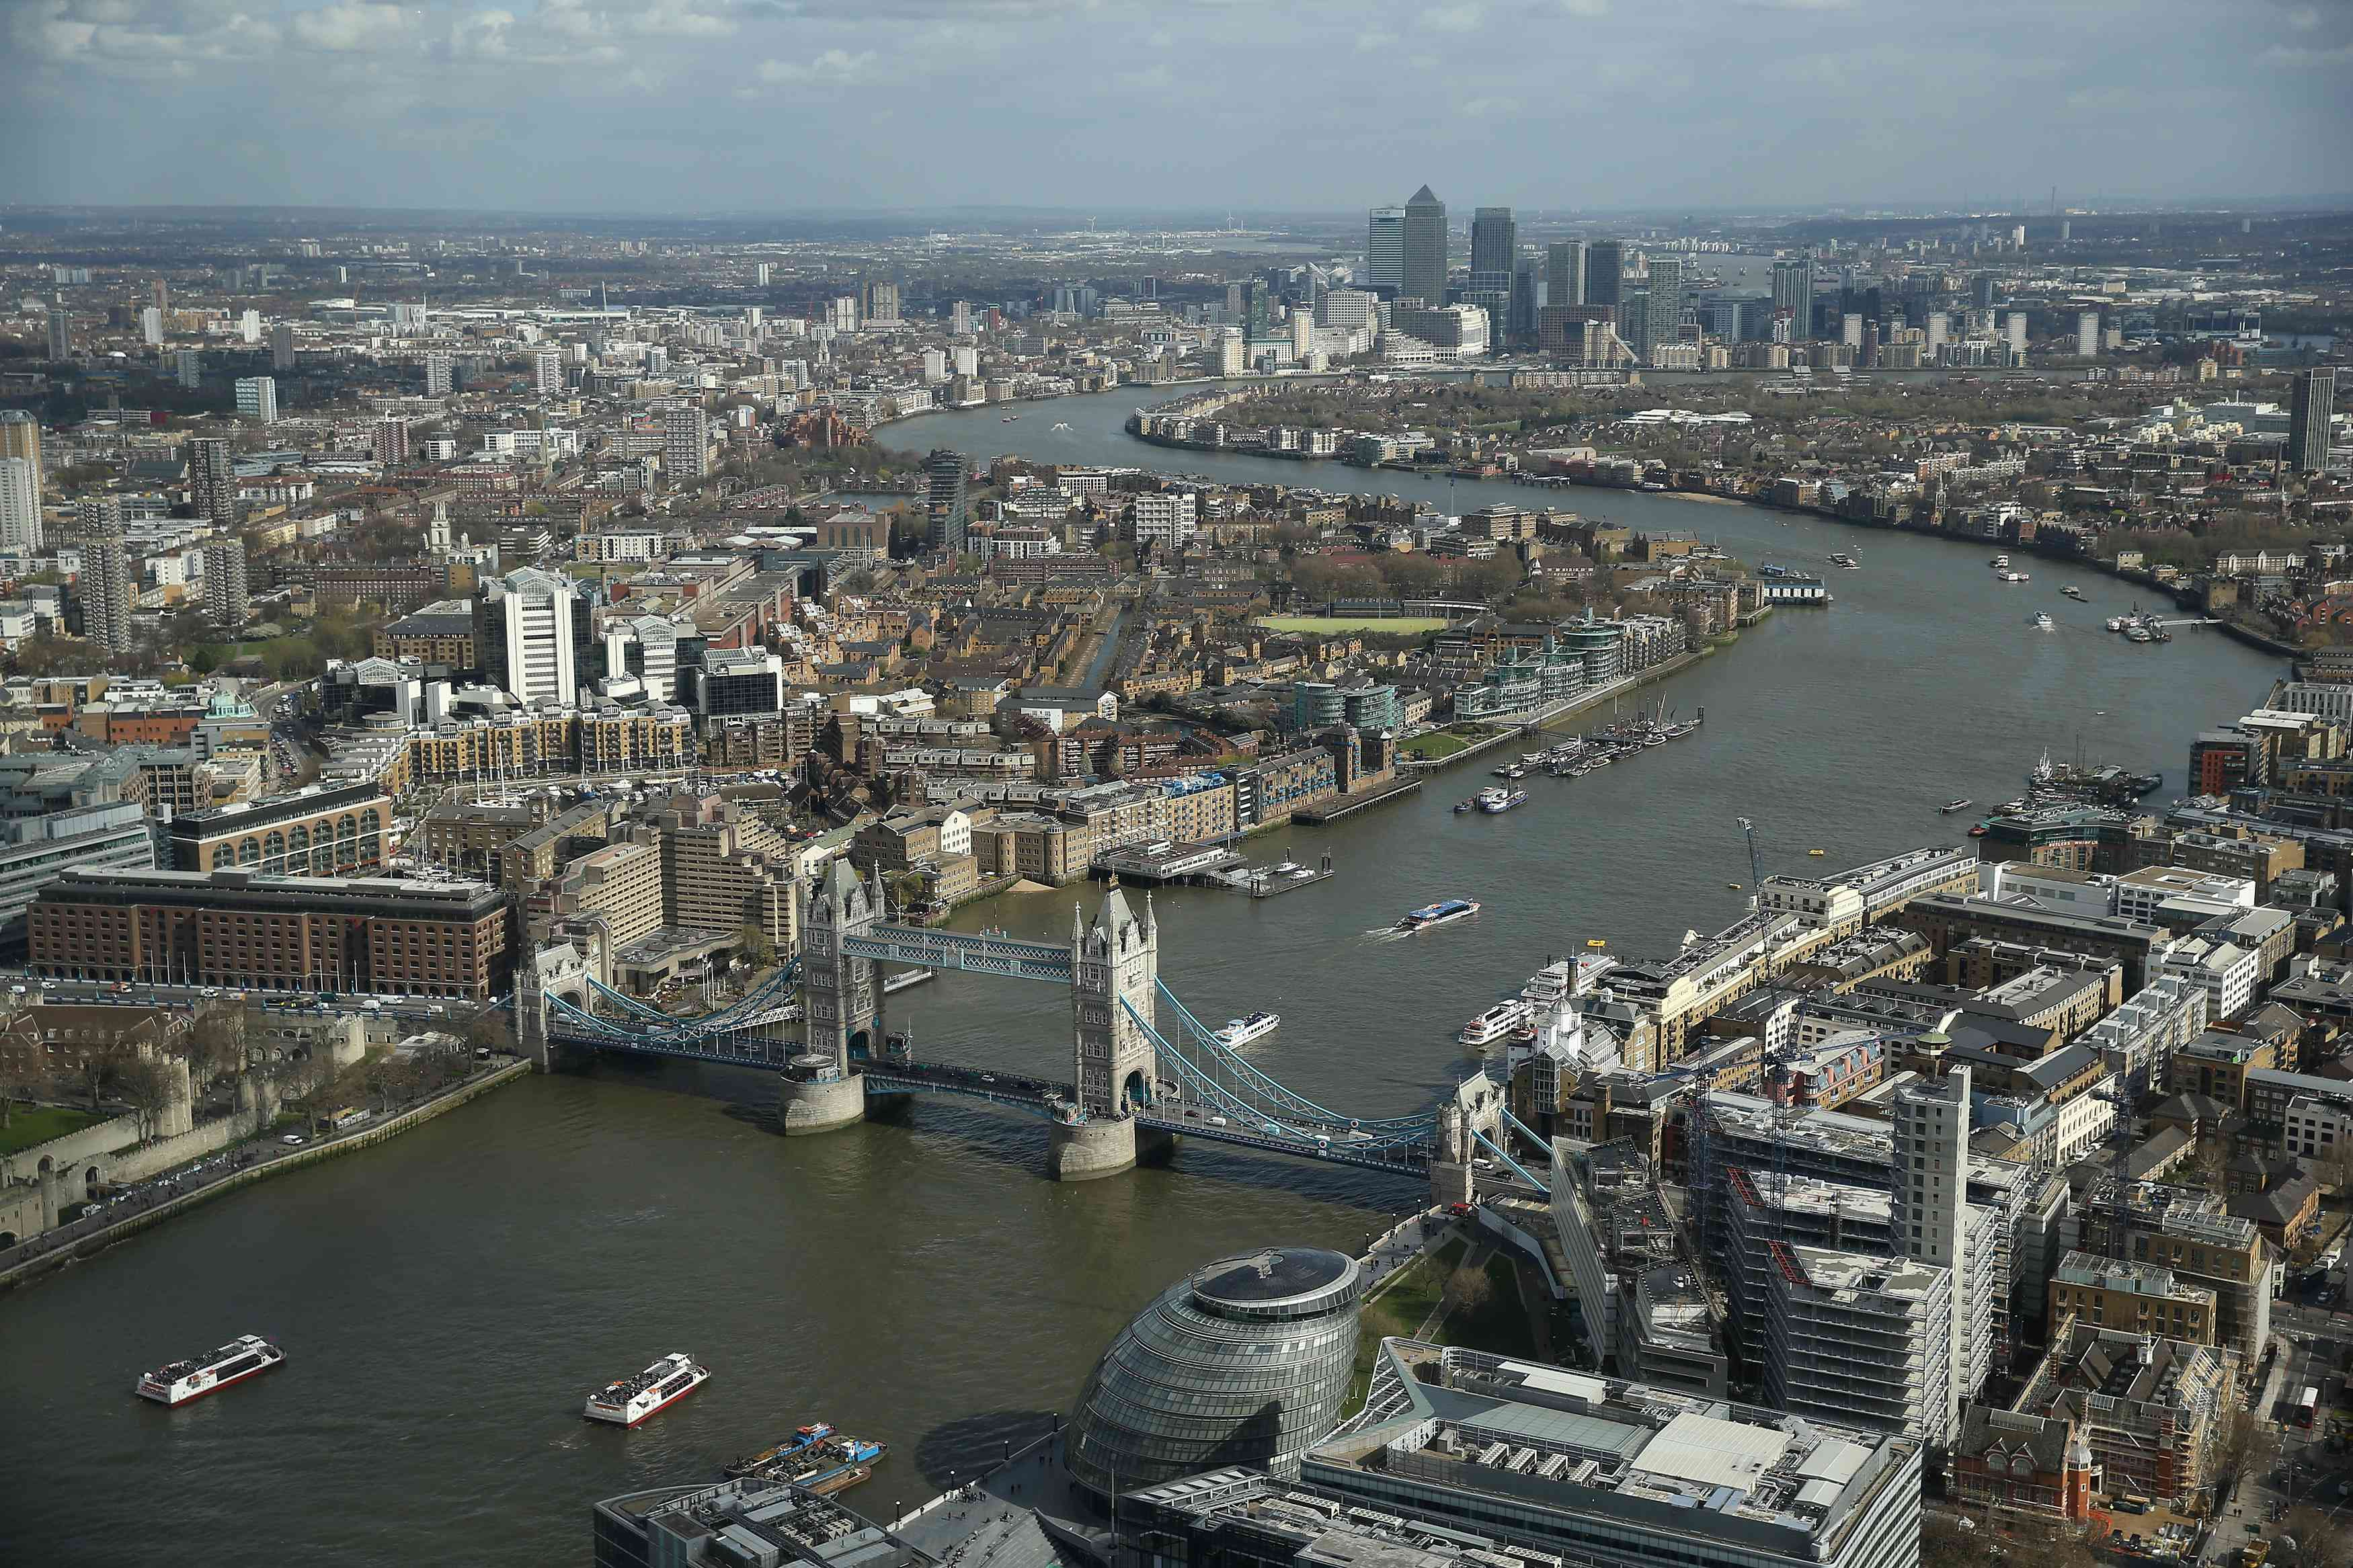 The Thames River snakes through the city center past Tower Bridge in this aerial view taken from the London Shard on March 21, 2014 in London, United Kingdom. The Shard is the city's tallest building and has become a major tourist attraction.